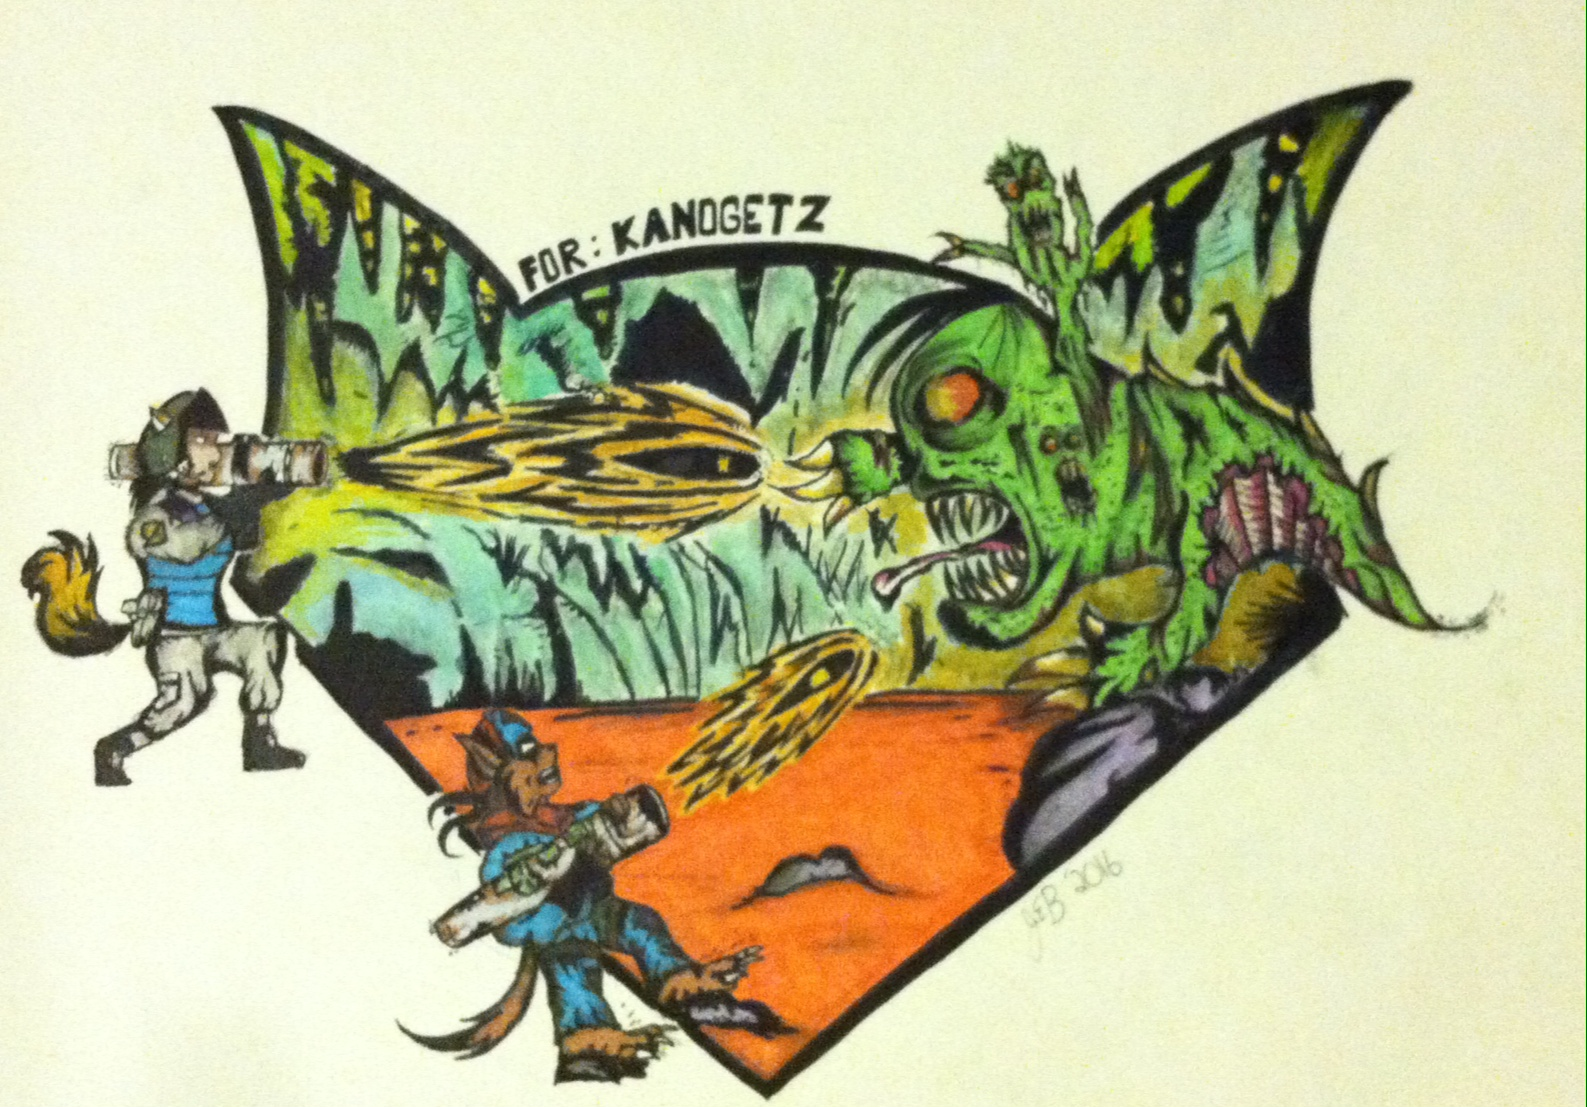 Artwork by austinswatkat87 for Kanogetz